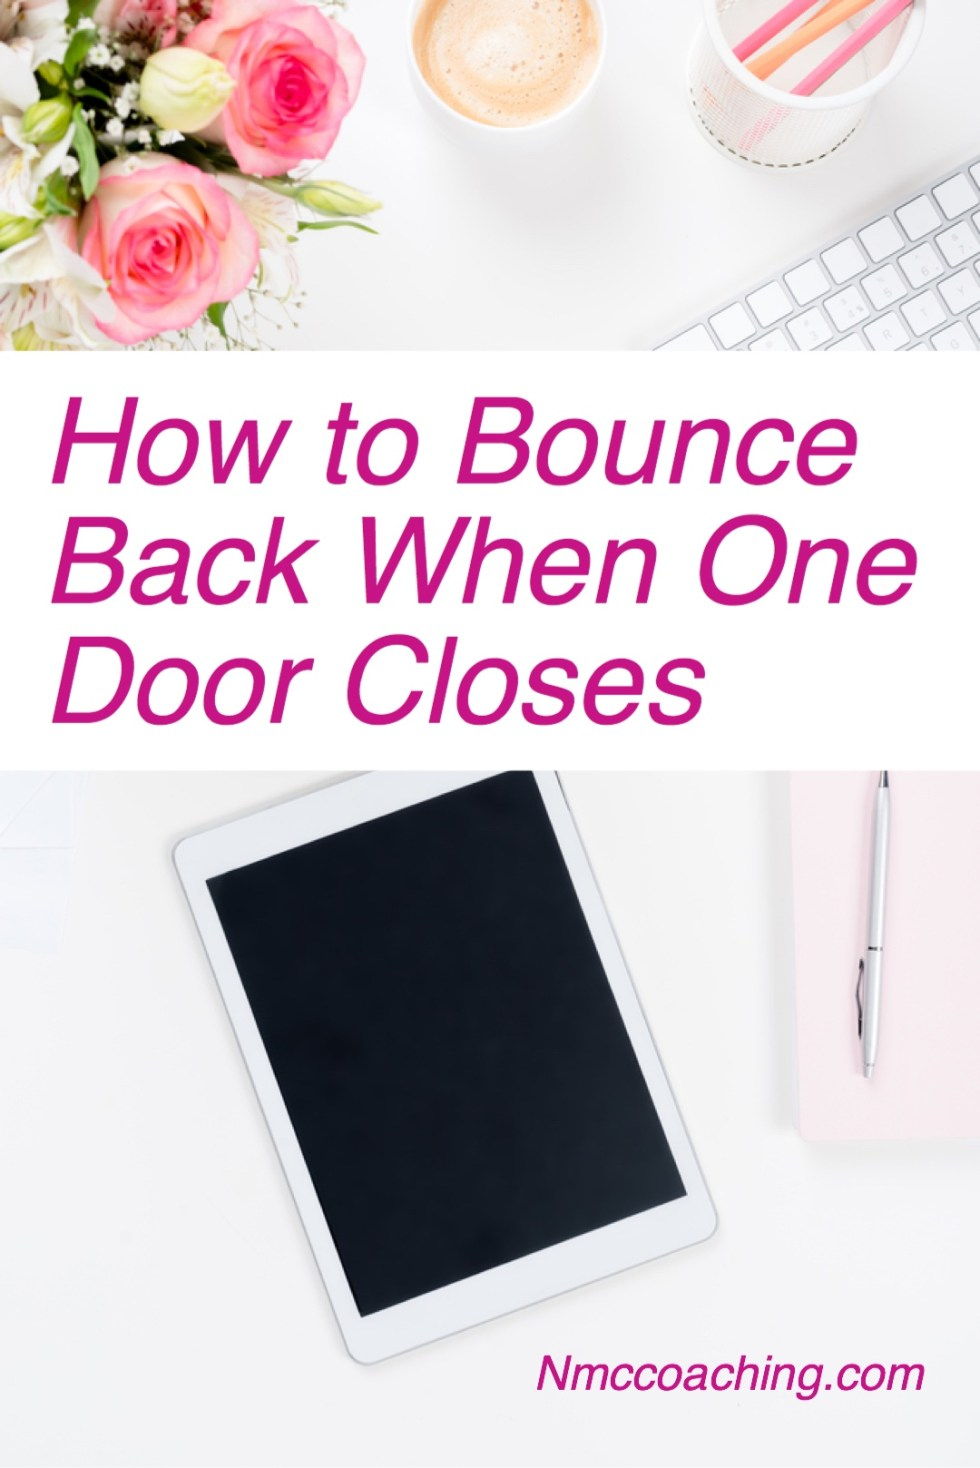 How to bounce back when one door closes